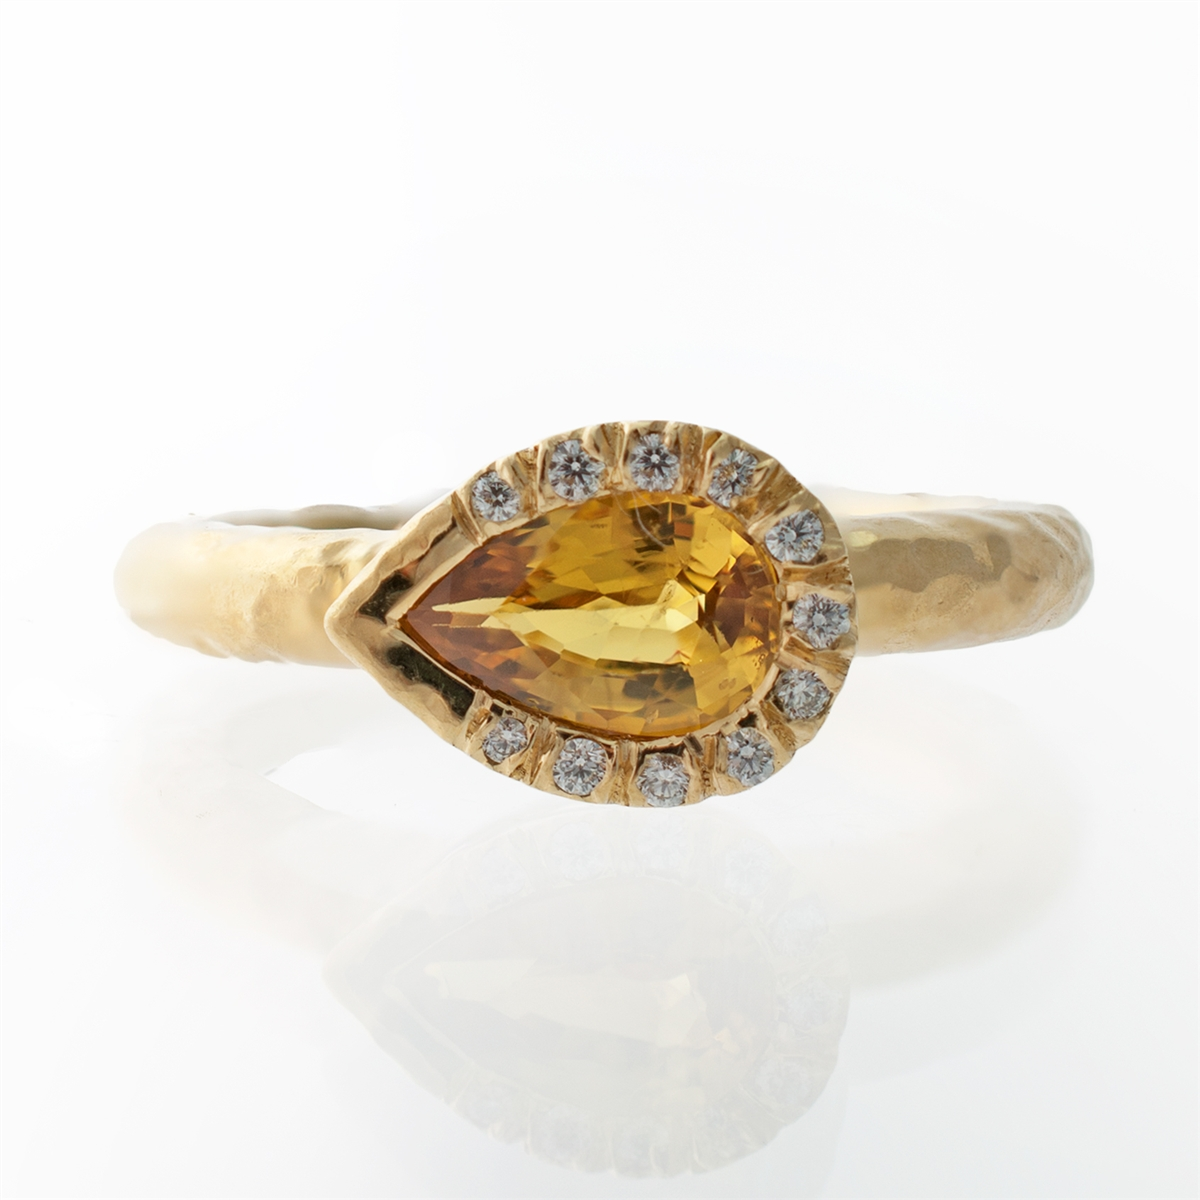 Modish Men Yellow Sapphire Ring Inclusions Larger Photo J Briggs Co Hammered Pear Bezel Yellow Sapphire Ring Yellow Sapphire Ring wedding rings Yellow Sapphire Ring